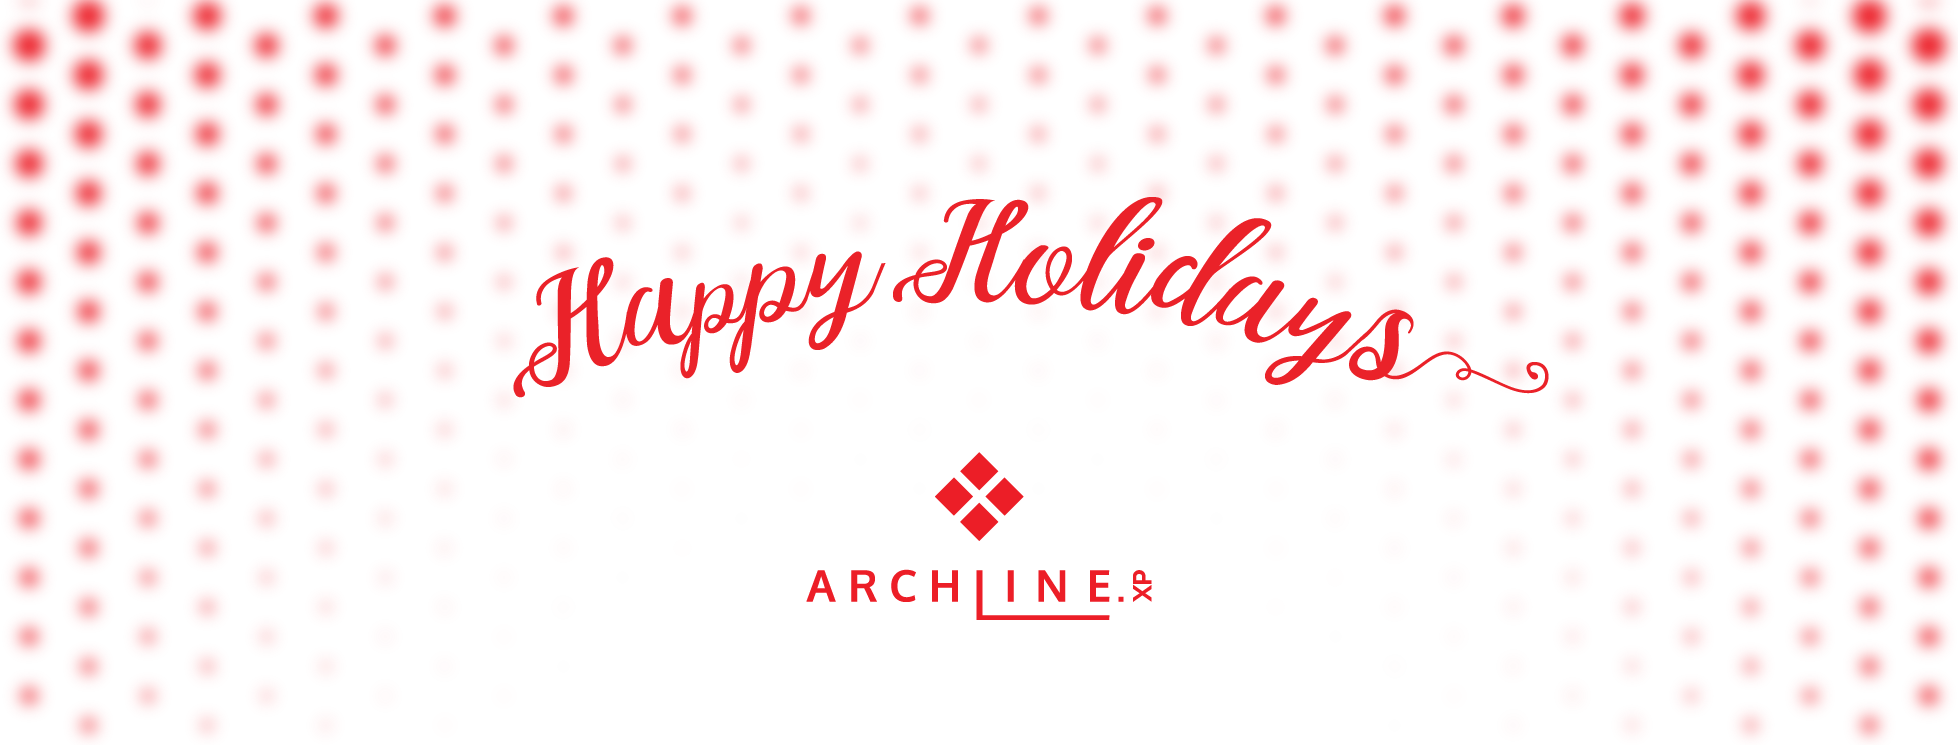 archline_holiday_card_fb_cover_eng1.png